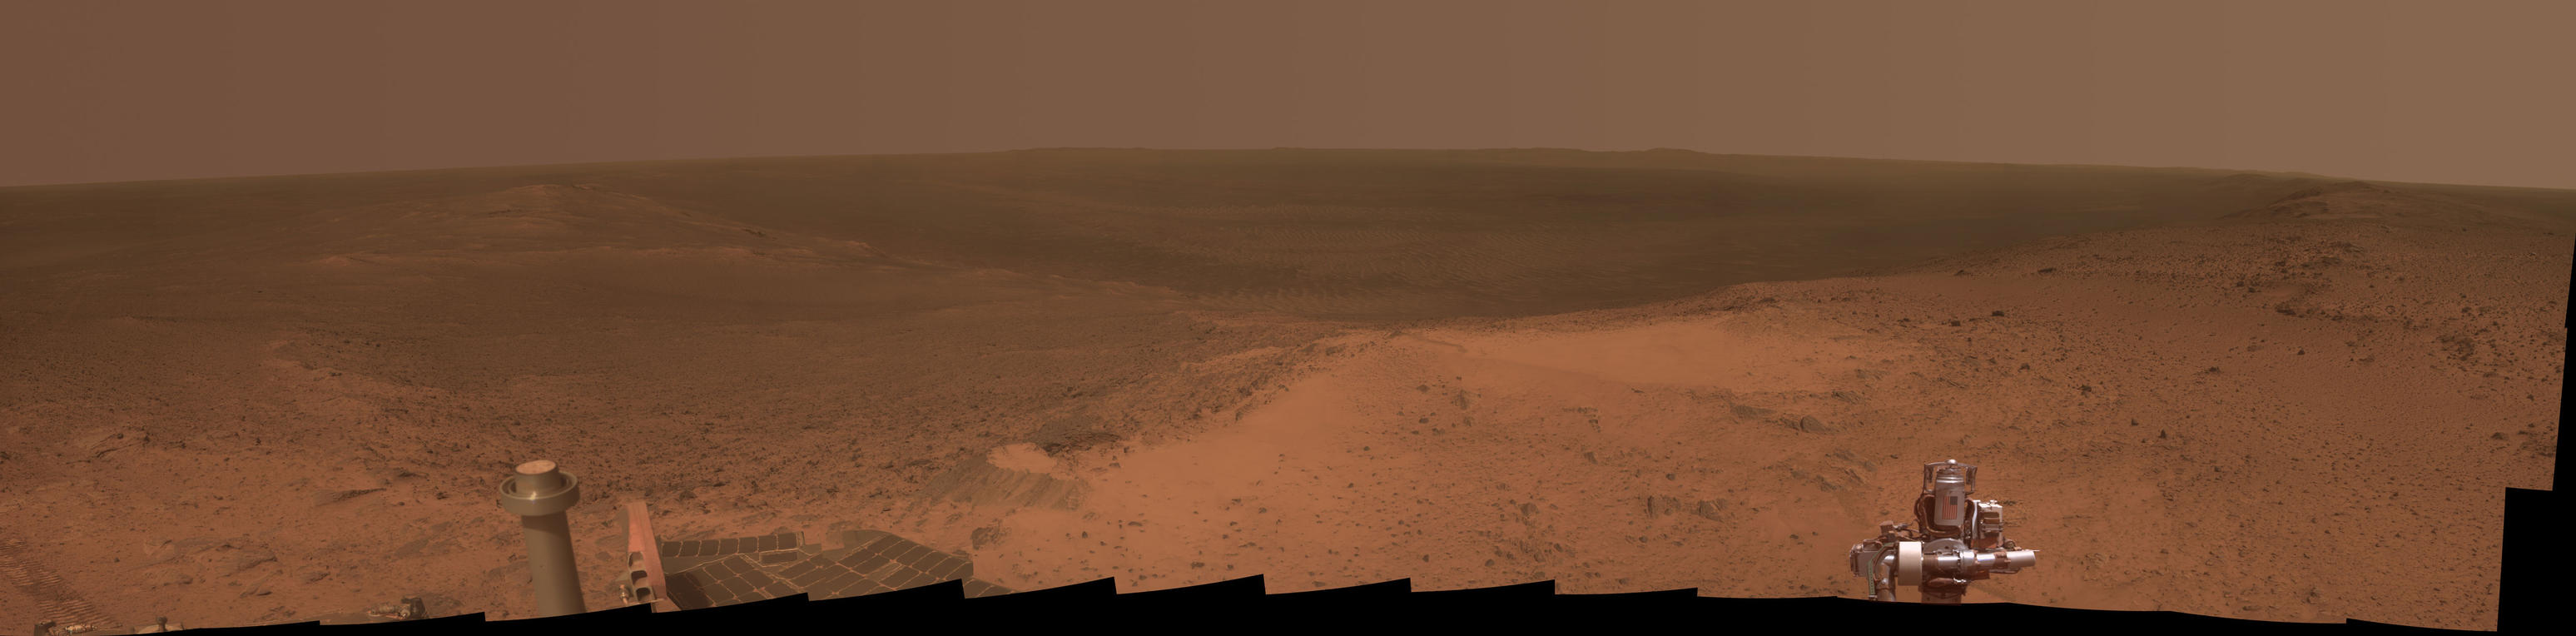 "This panorama is the view NASA's Mars Exploration Rover Opportunity gained from the top of the ""Cape Tribulation"" segment of the rim of Endeavour Crater. The rover reached this point three weeks before the 11th anniversary of its January 2004 landing on Mars."